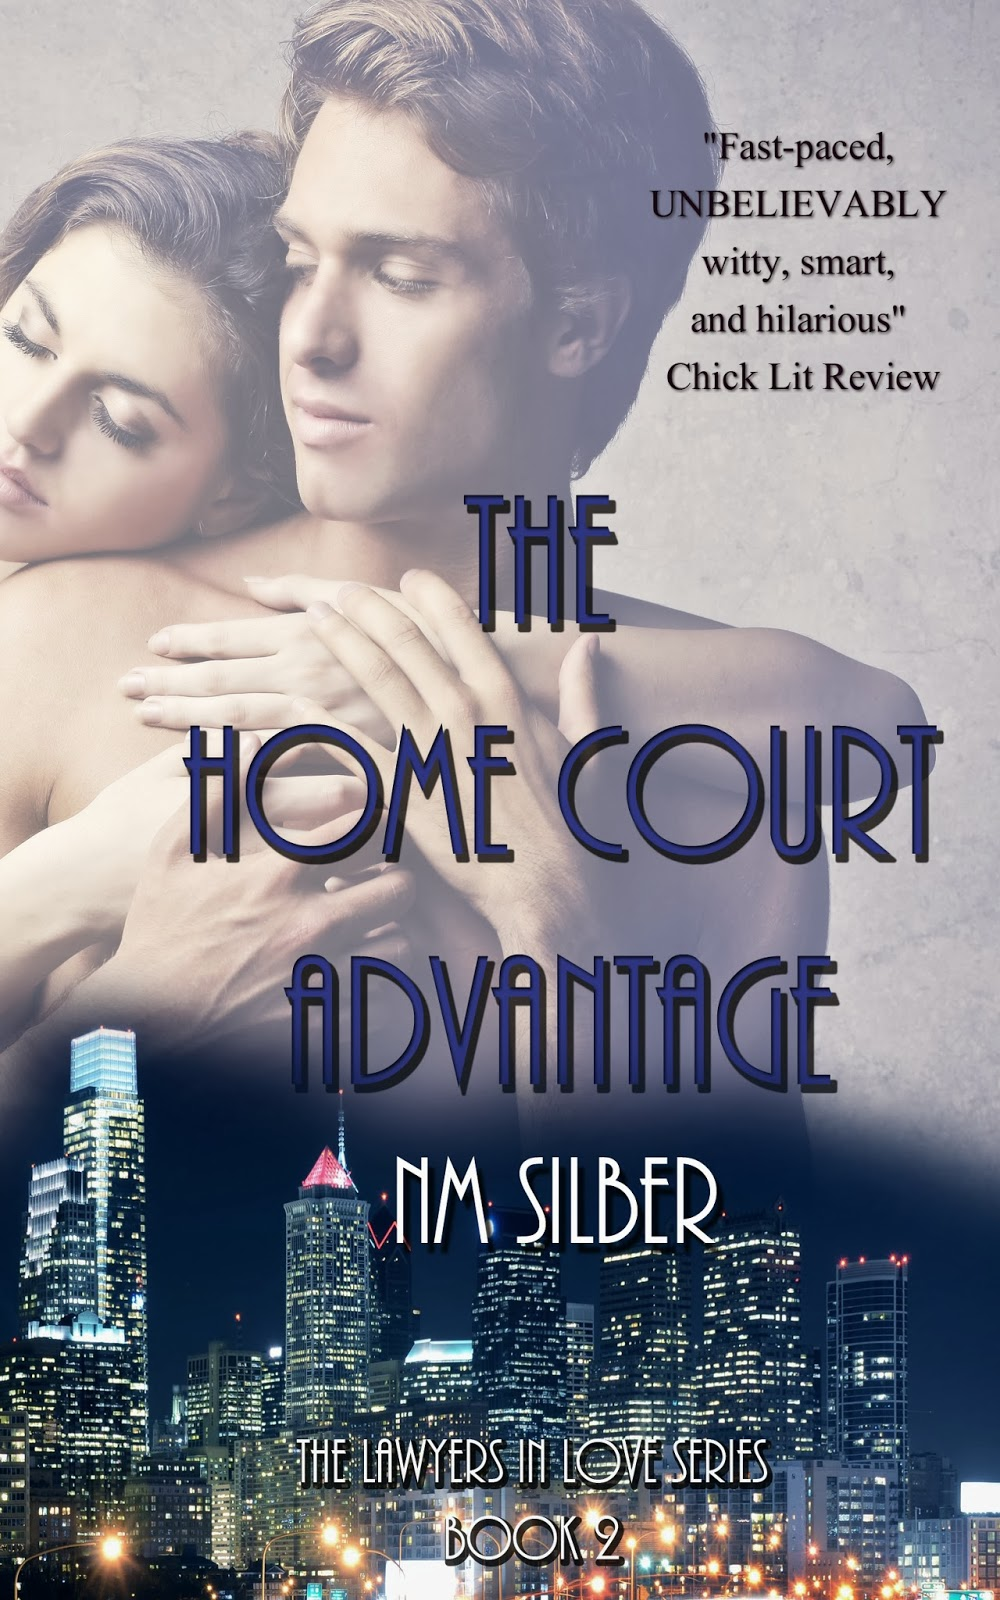 https://www.goodreads.com/book/show/18462153-the-home-court-advantage